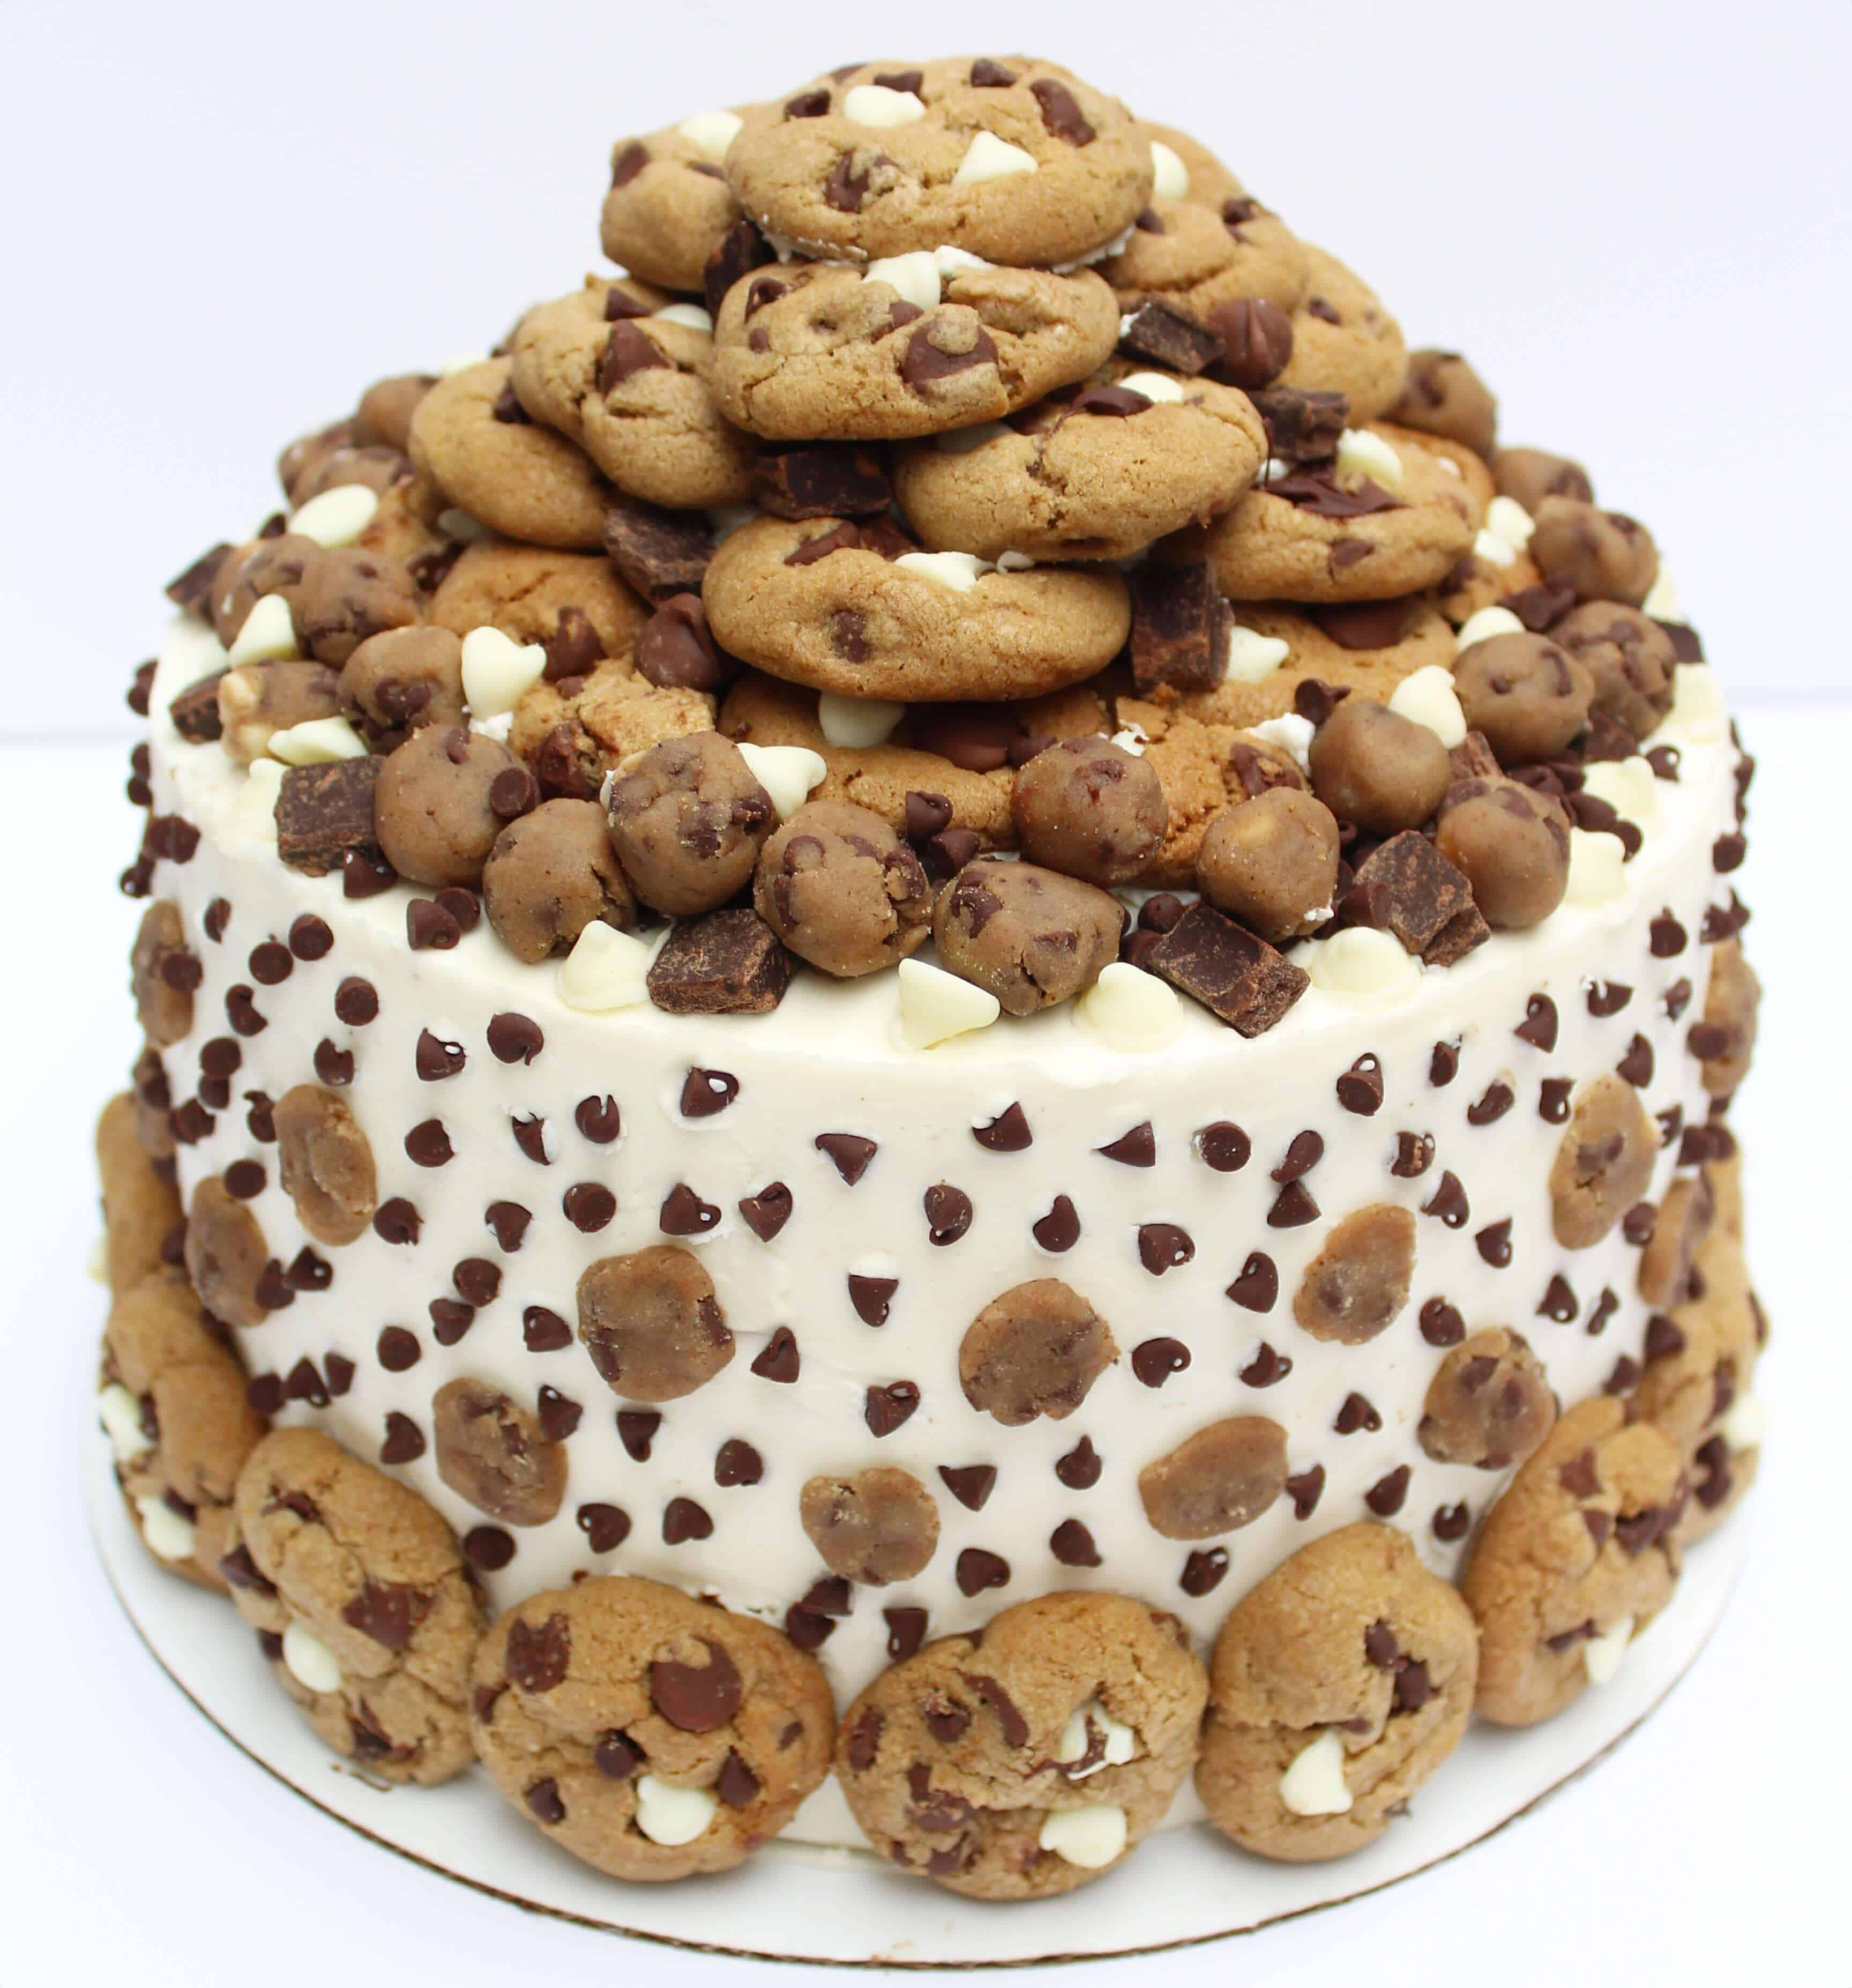 Ultimate Chocolate Chip Cookie Dough Cake